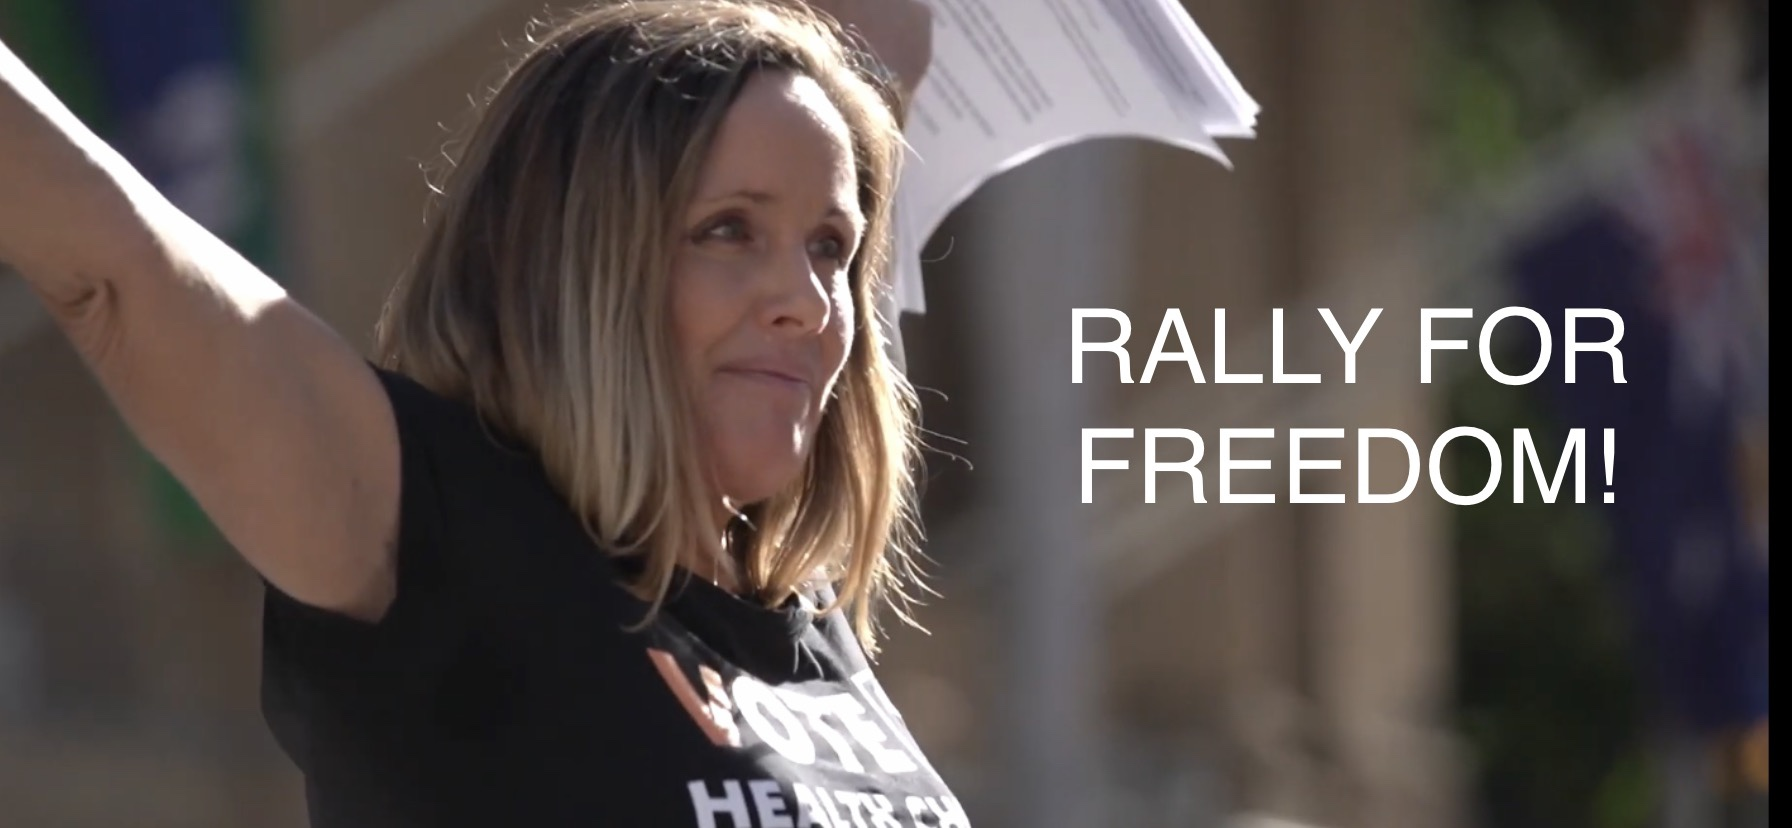 Rally for Freedom – Brisbane May 30, 2020